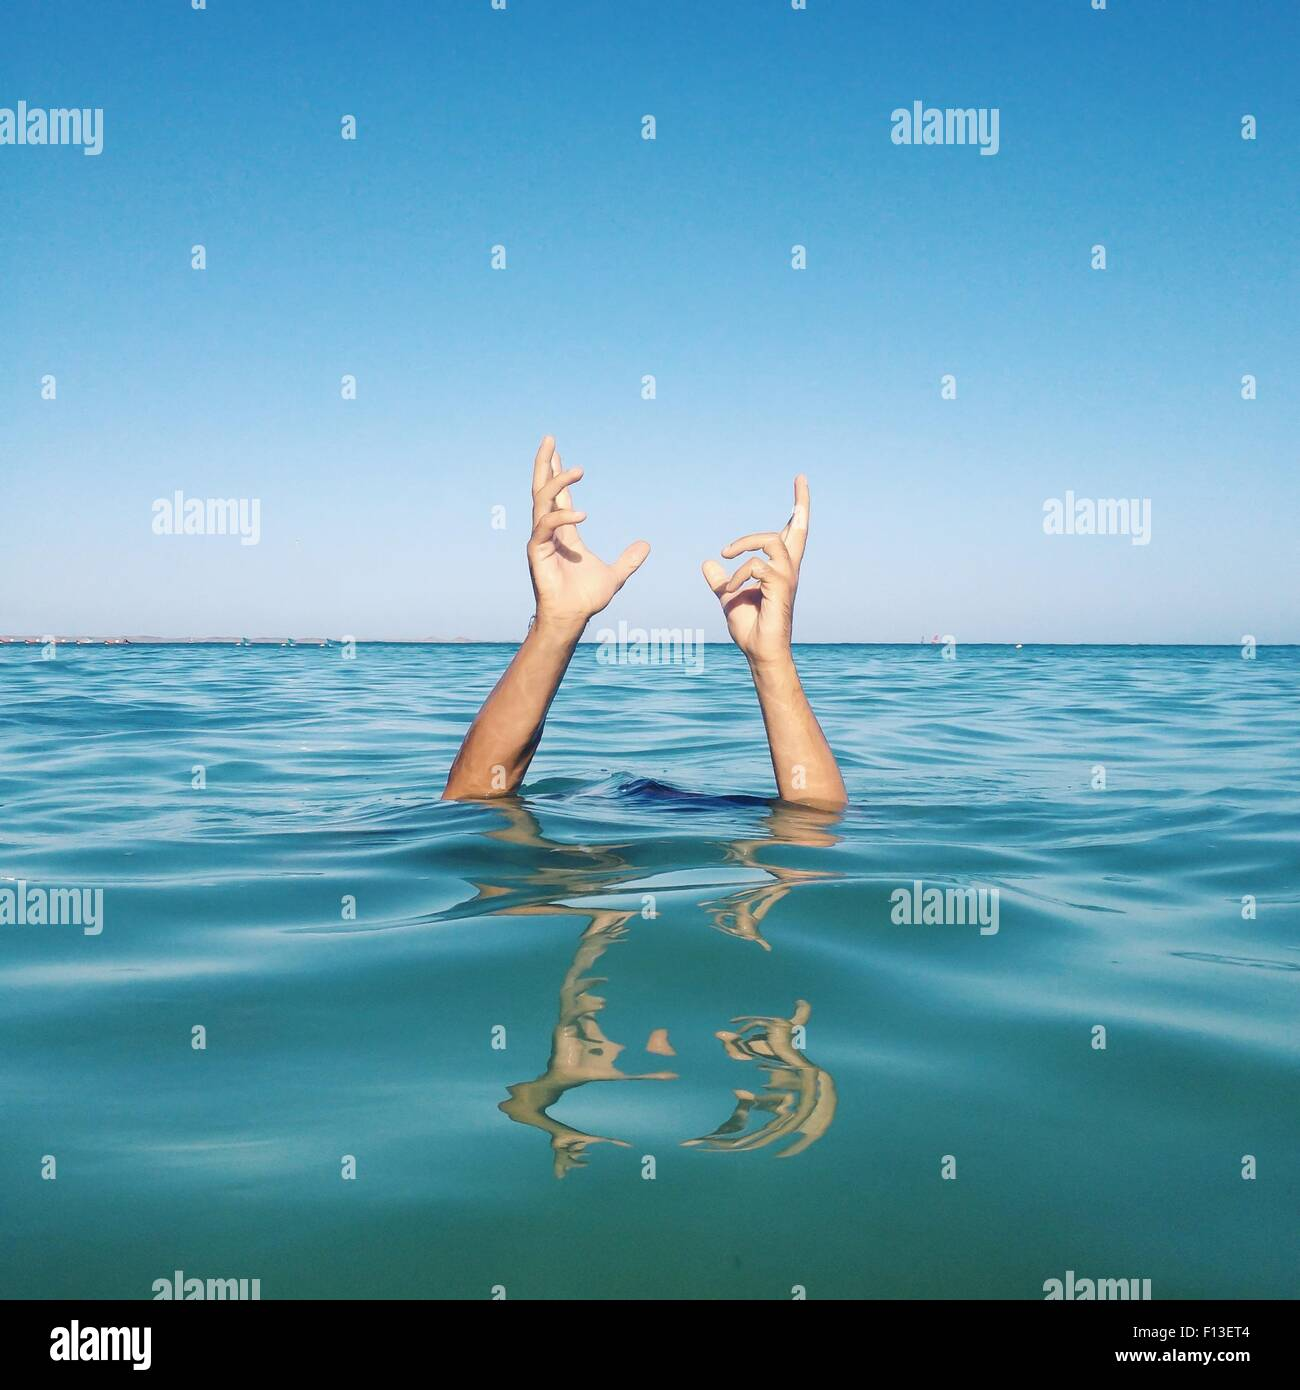 Des mains qui sortent de la mer Photo Stock